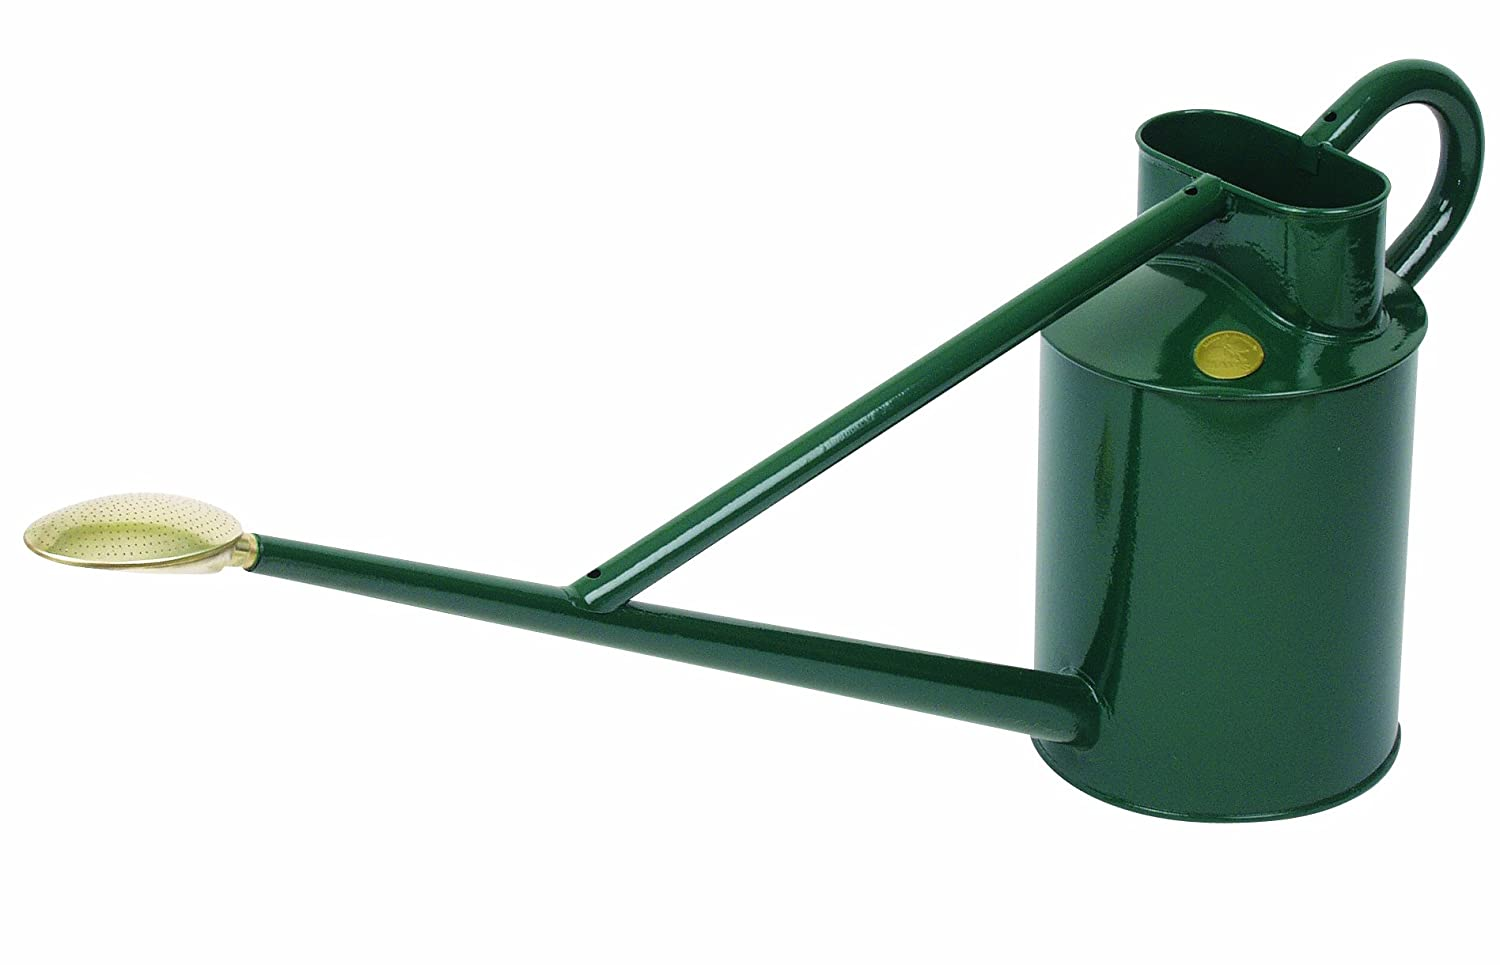 Haws 188-2 Original Watering Can - 2.4 Gallon, Green